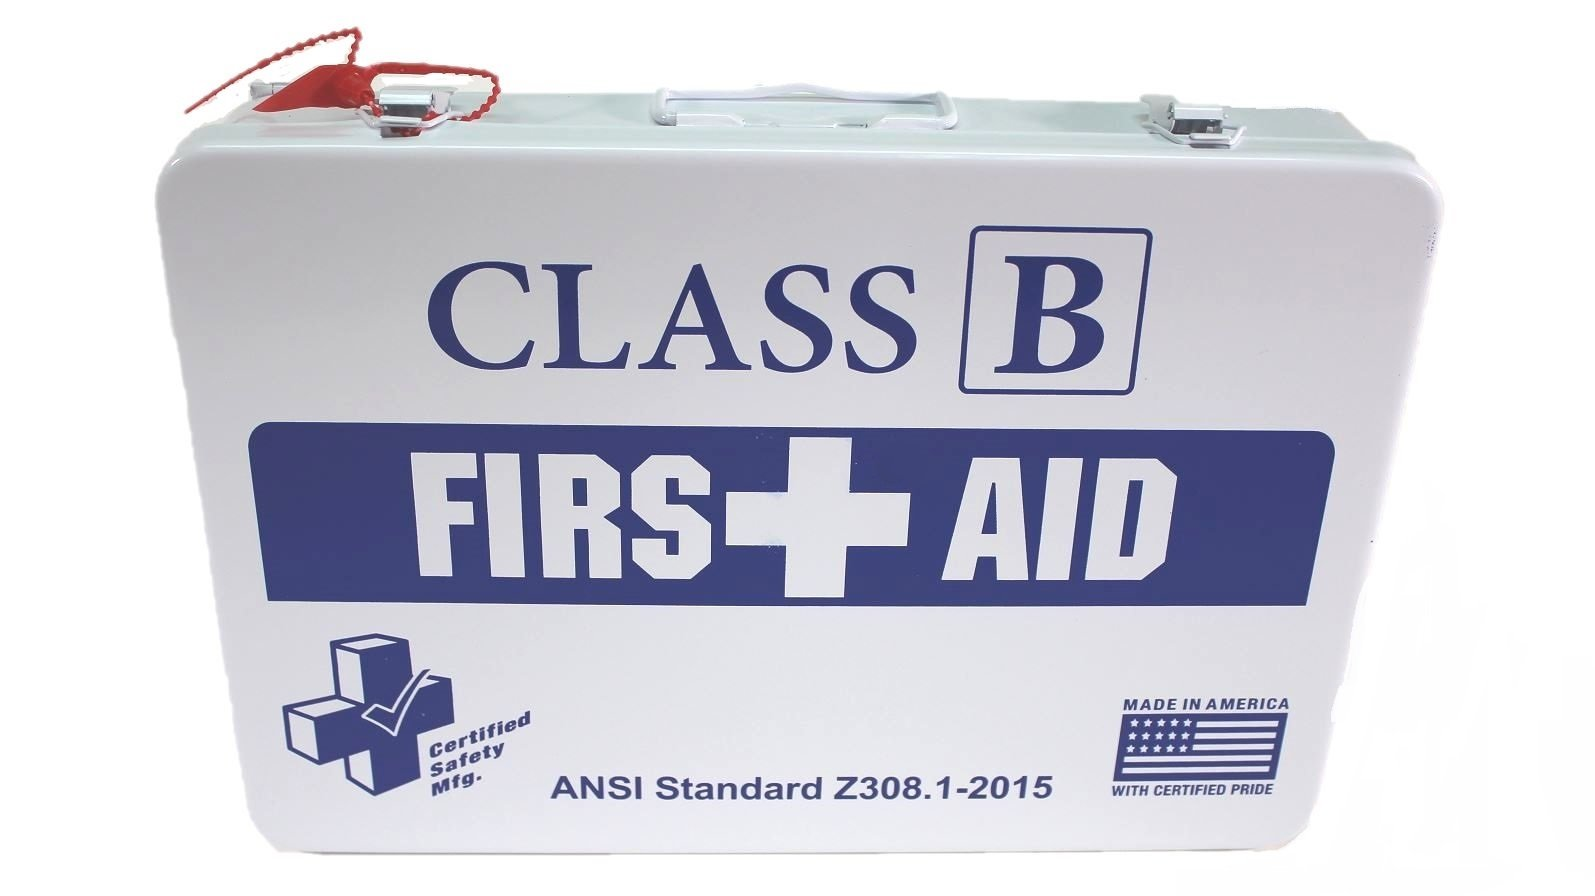 Certified Safety K615-019 36M Class B First Aid Kit, ANSI Z308.1-2015, Metal Case by Certified Safety